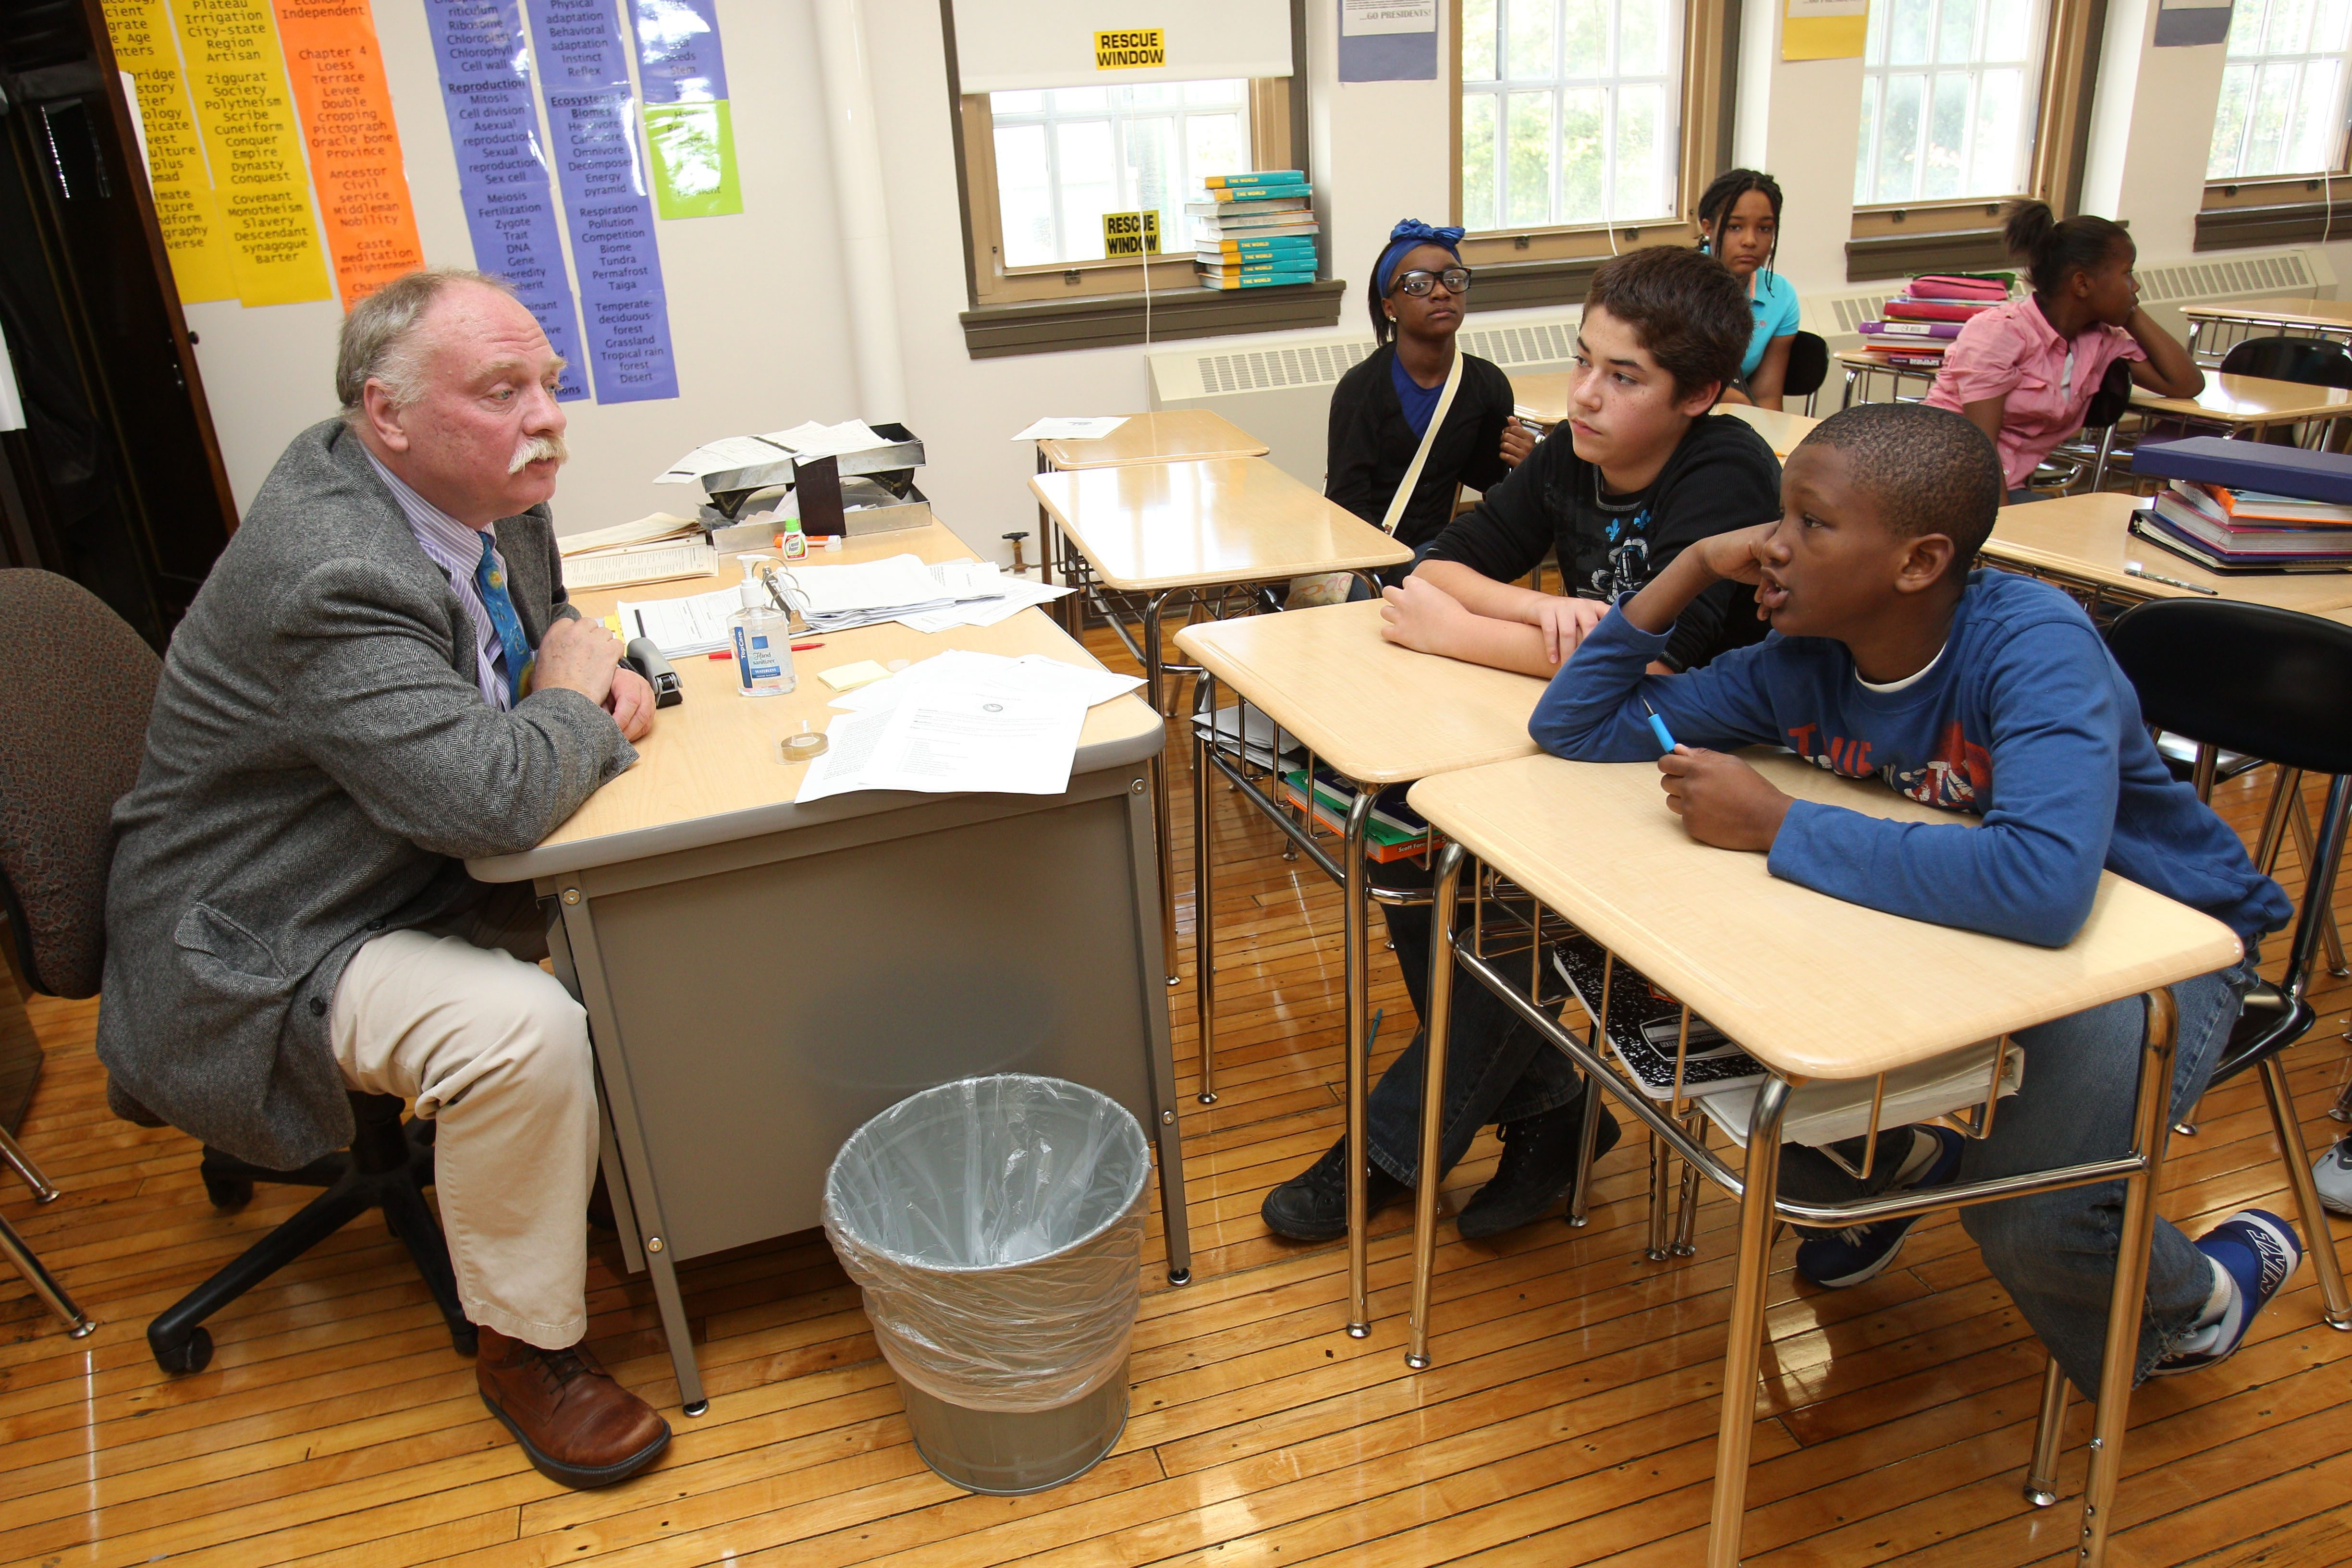 George Cleveland, the grandson of President Grover Cleveland, speaks to International Preparatory School sixth-graders Mashya Taylor, front row left, Michael Alvira, center, and Nolan Shephard.